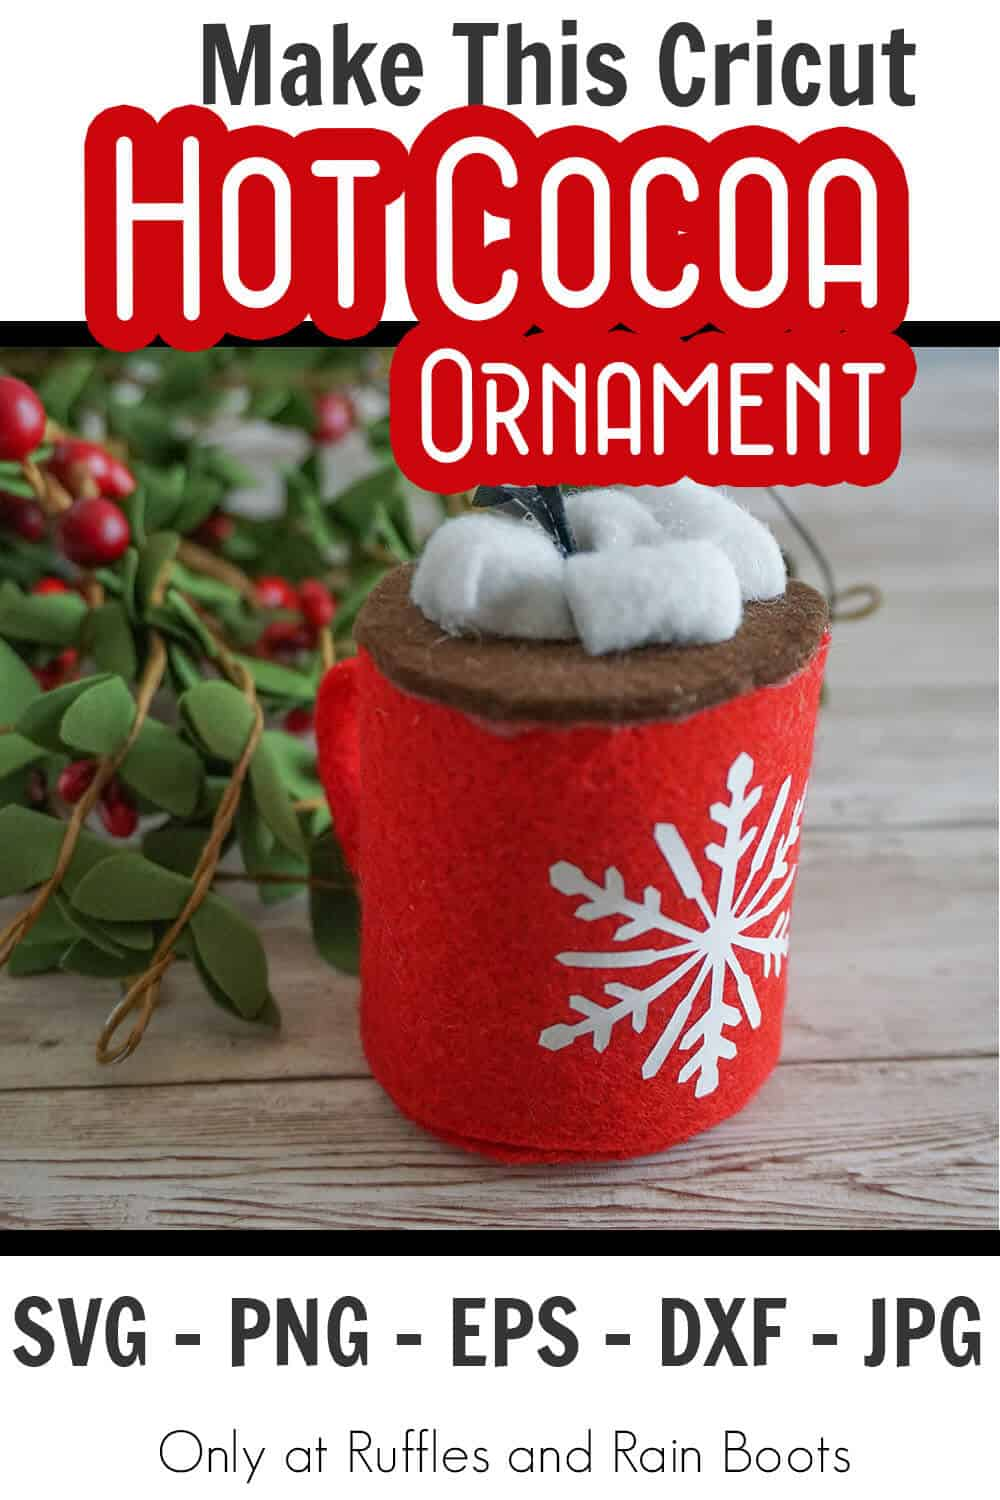 Cricut Hot cocoa ornament with text which reads make this cricut hot cocoa ornament svg png eps dxf png